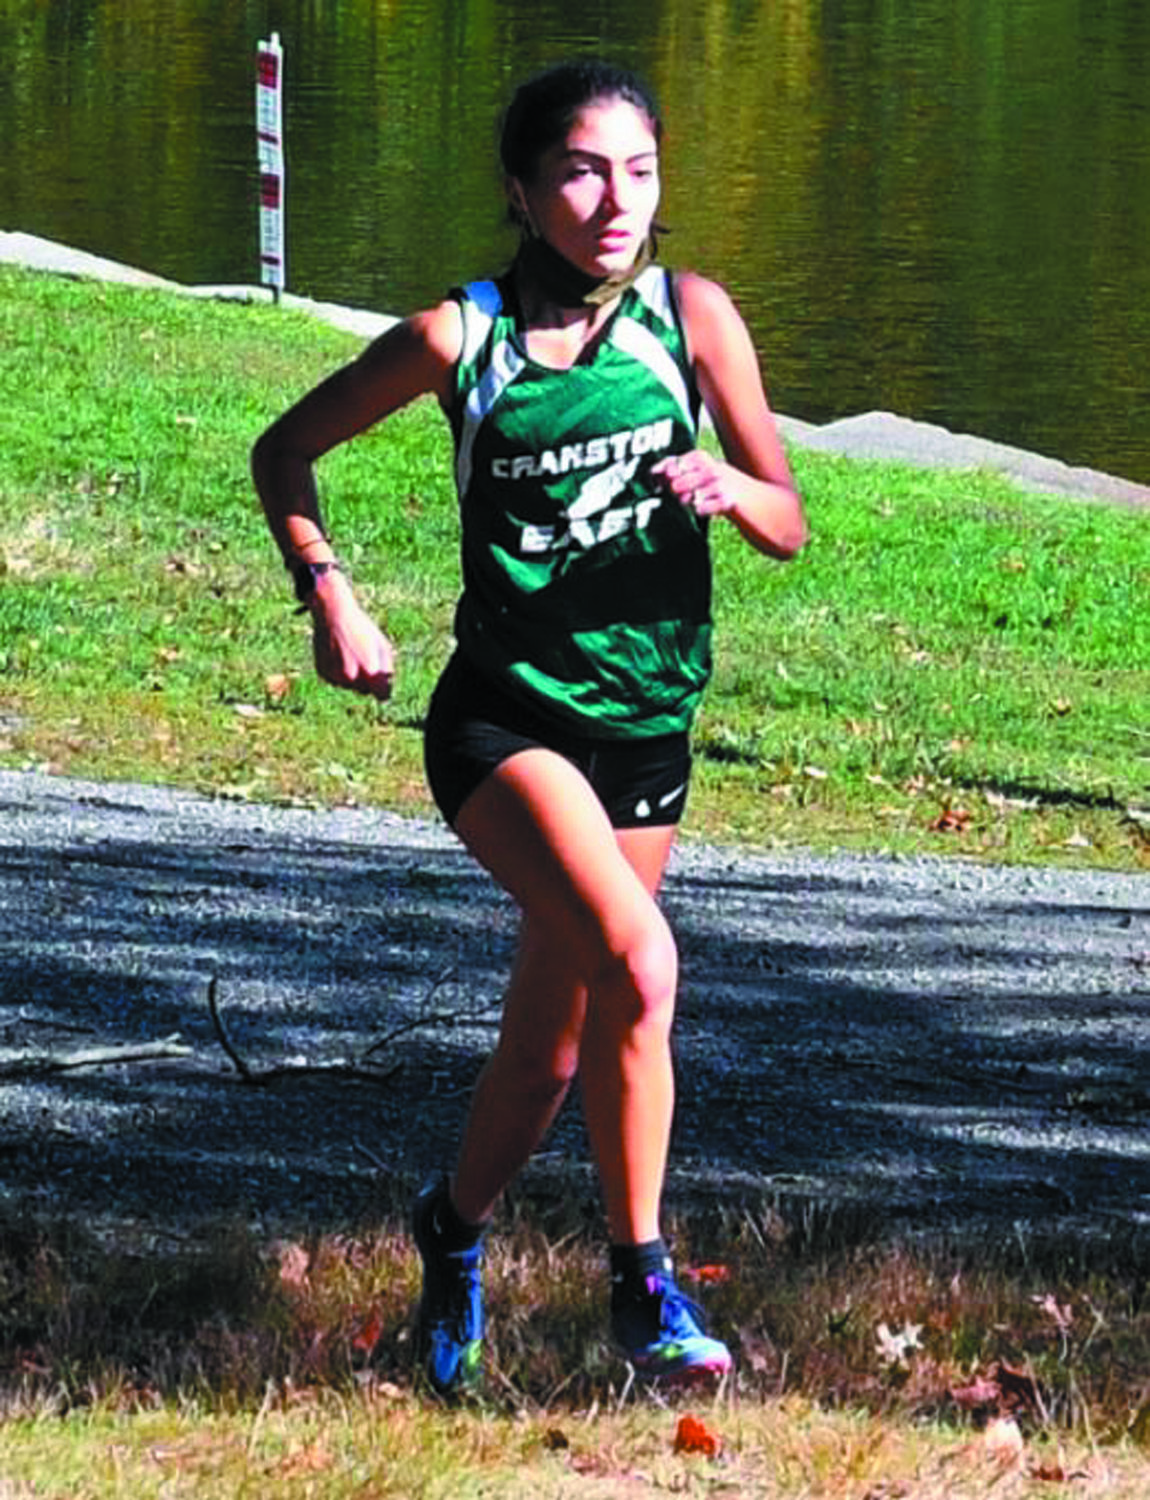 ON THE COURSE: Cranston East's Stella Loezos last weekend at Roger Williams Park.